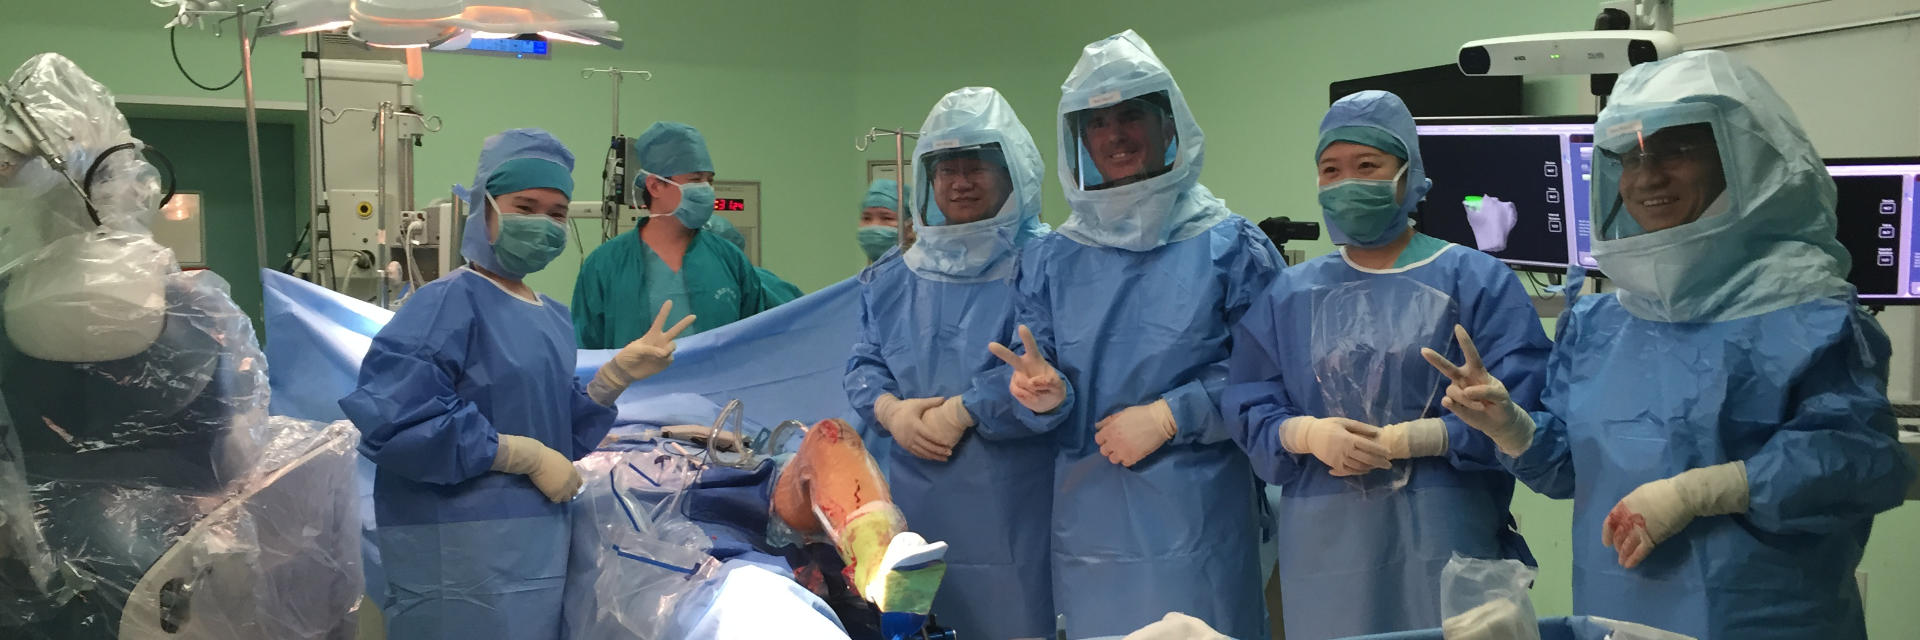 Dr. Buechel with medical staff after robotic knee replacement surgery at Taipei Postal Hospital